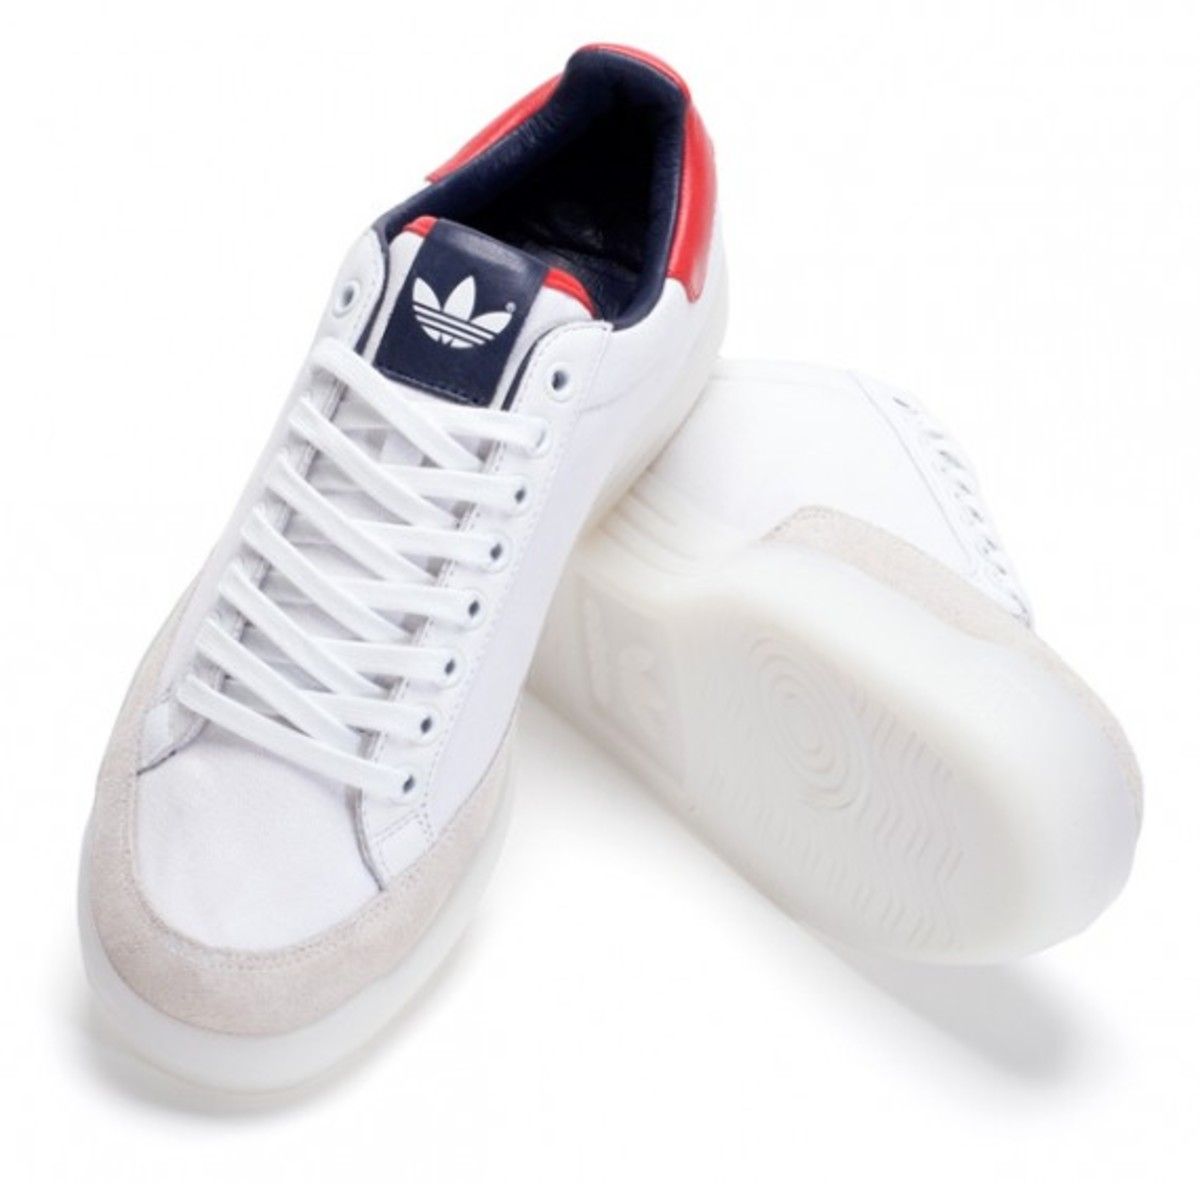 100% authentic 04b55 d60c0 adidas-originals-by-originals---springsummer-2010---james-bond-for-david- beckham-collection---2.jpg